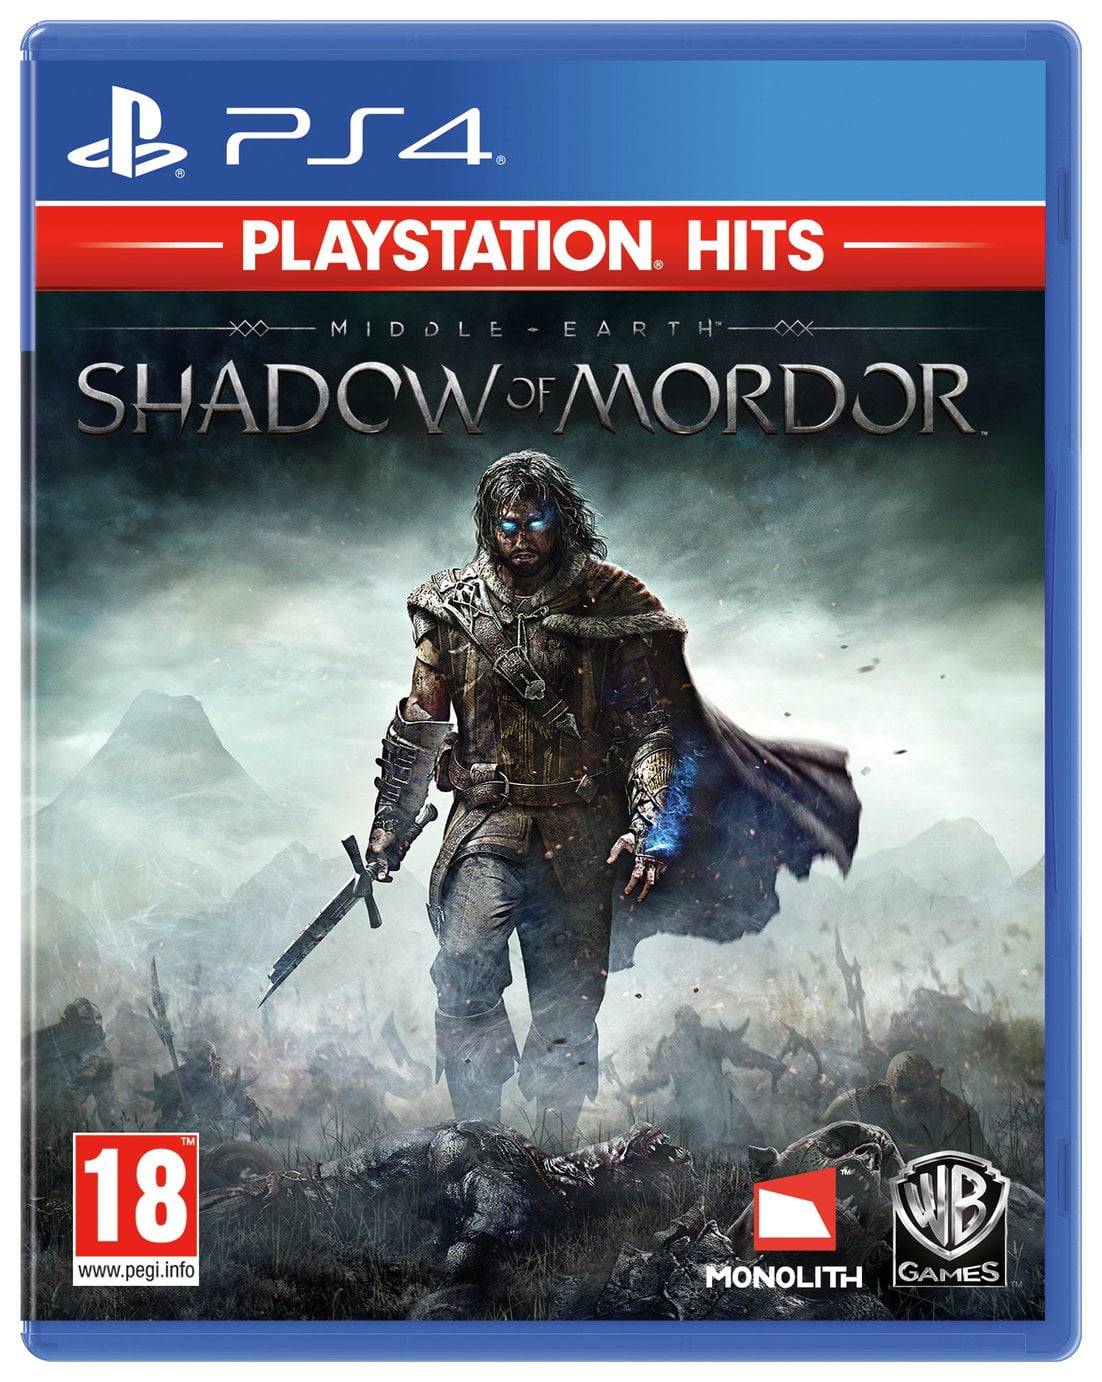 Middle Earth: Shadow of Mordor PS4 Hits Game